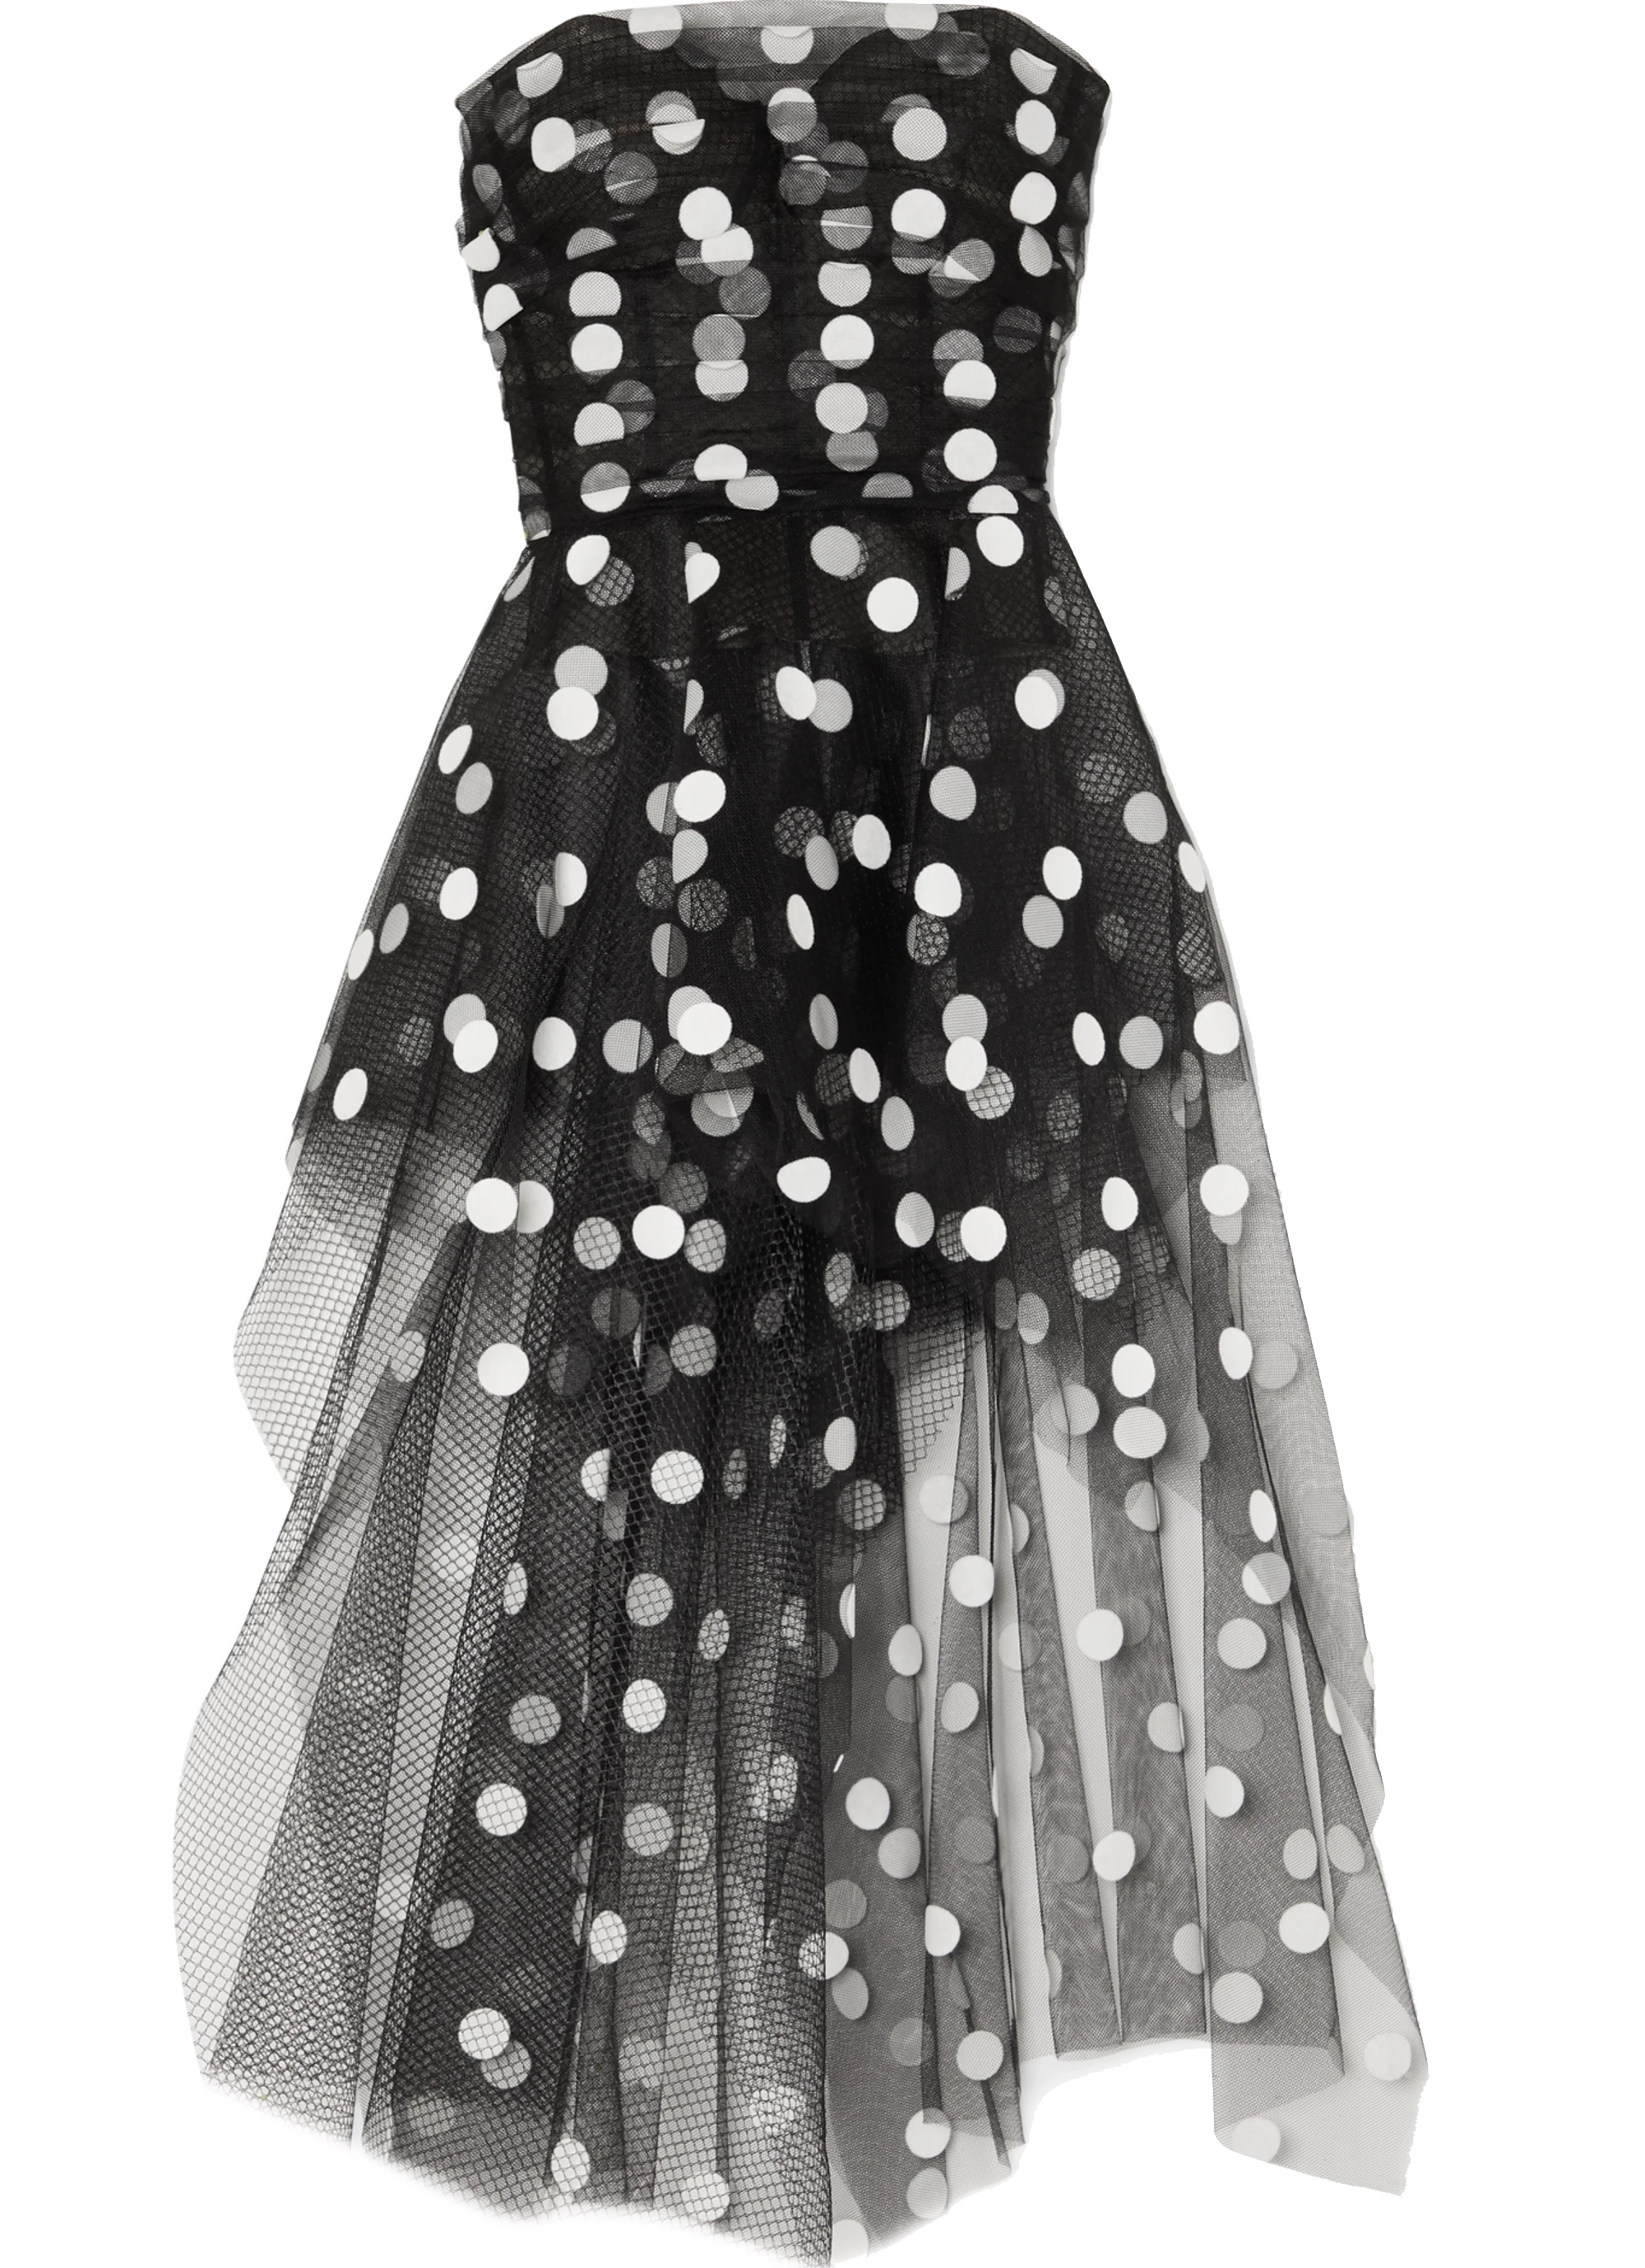 Strapless Mesh Polka Dot Asymmetric Oscar de la Renta Inspired Dress